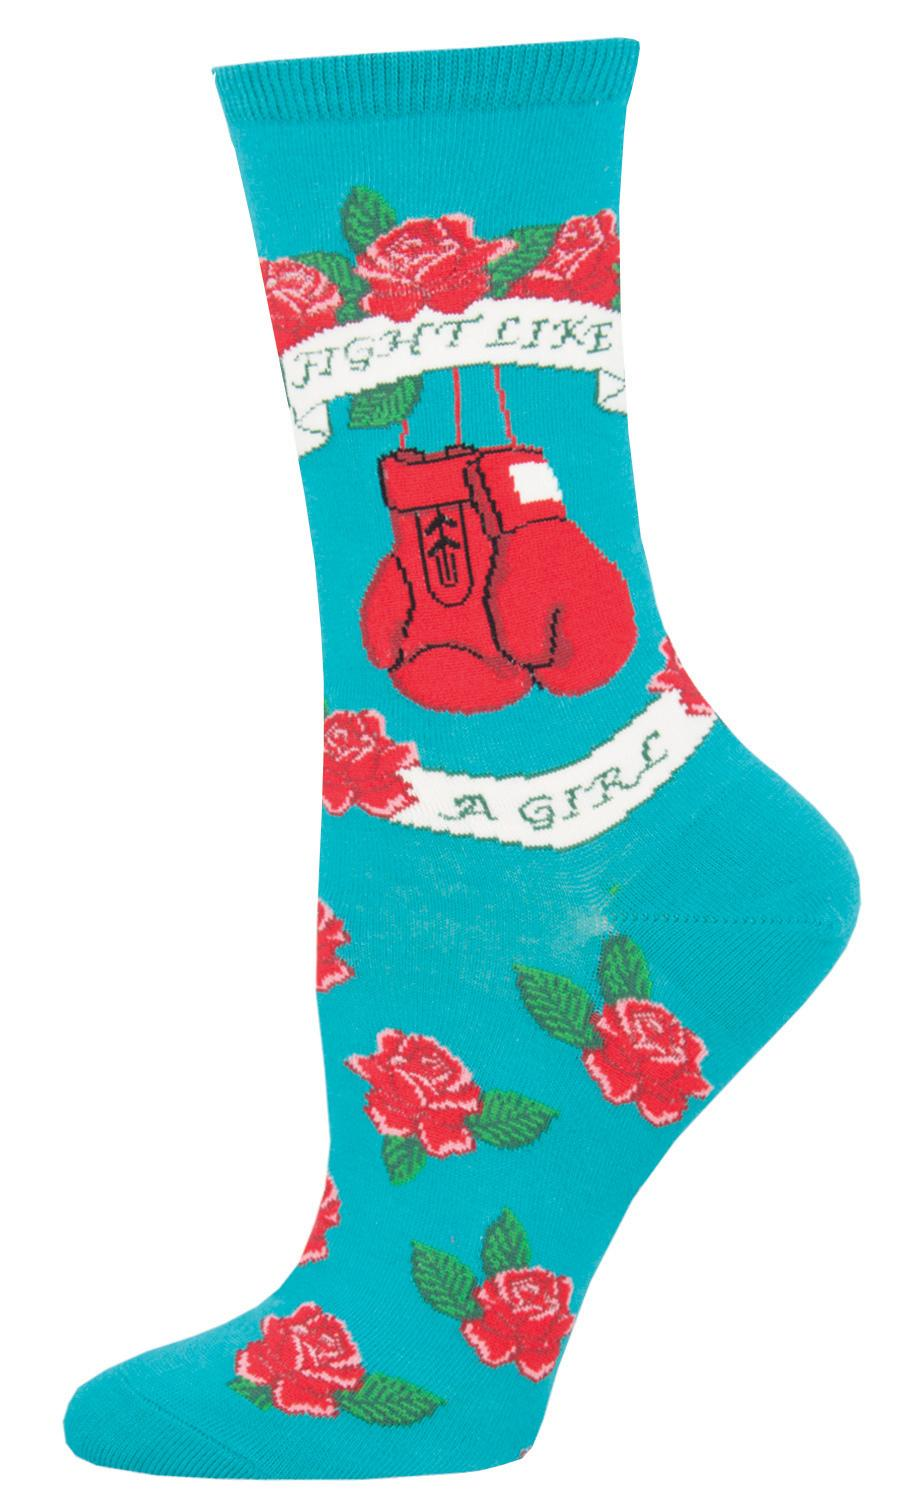 Ladies Socks - Fight Like A Girl Teal (Size 9-11)